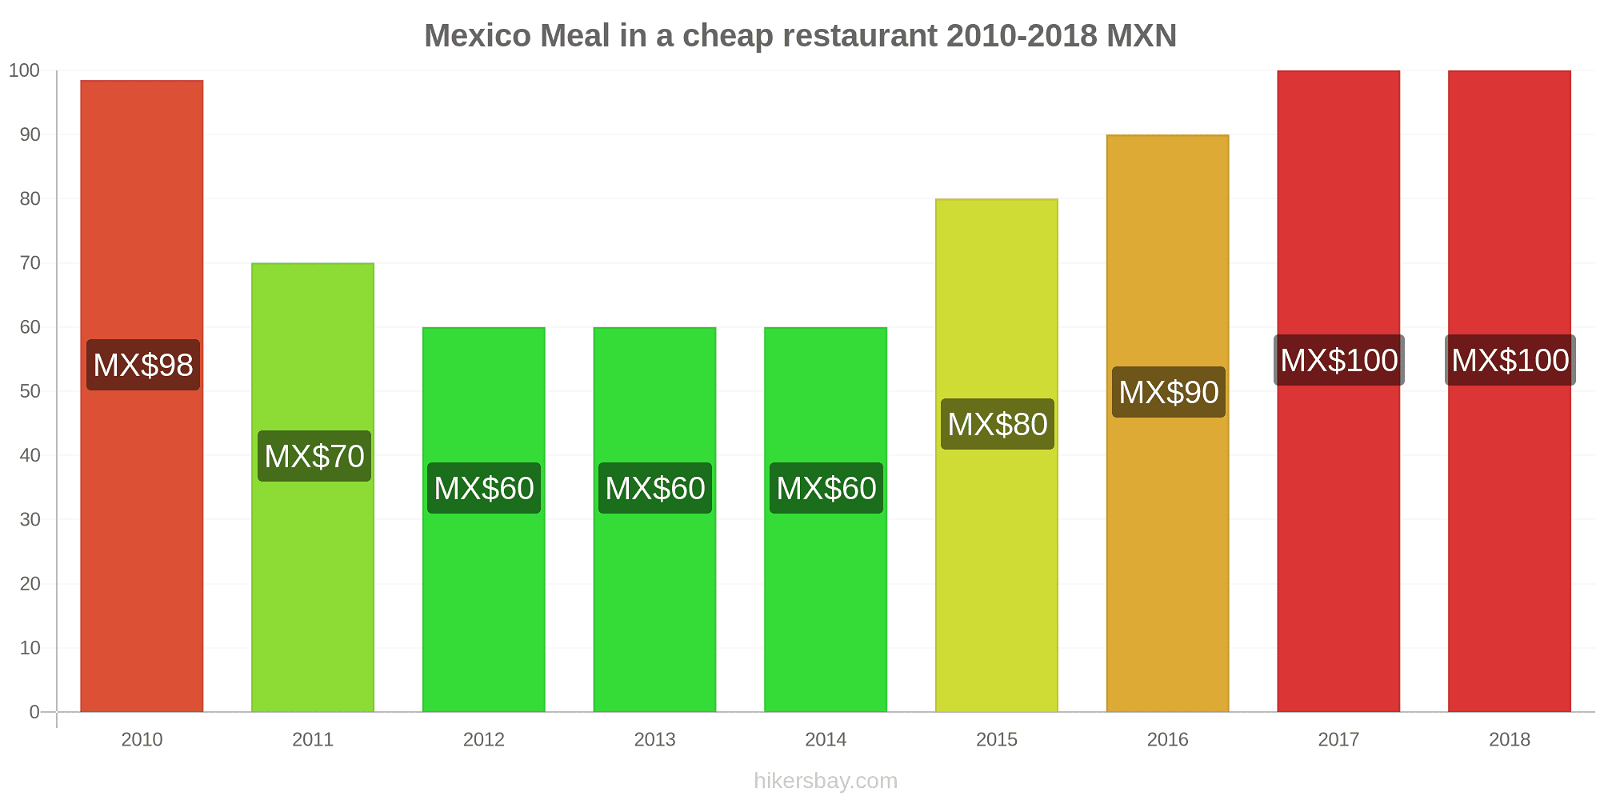 Mexico price changes Meal in a cheap restaurant hikersbay.com